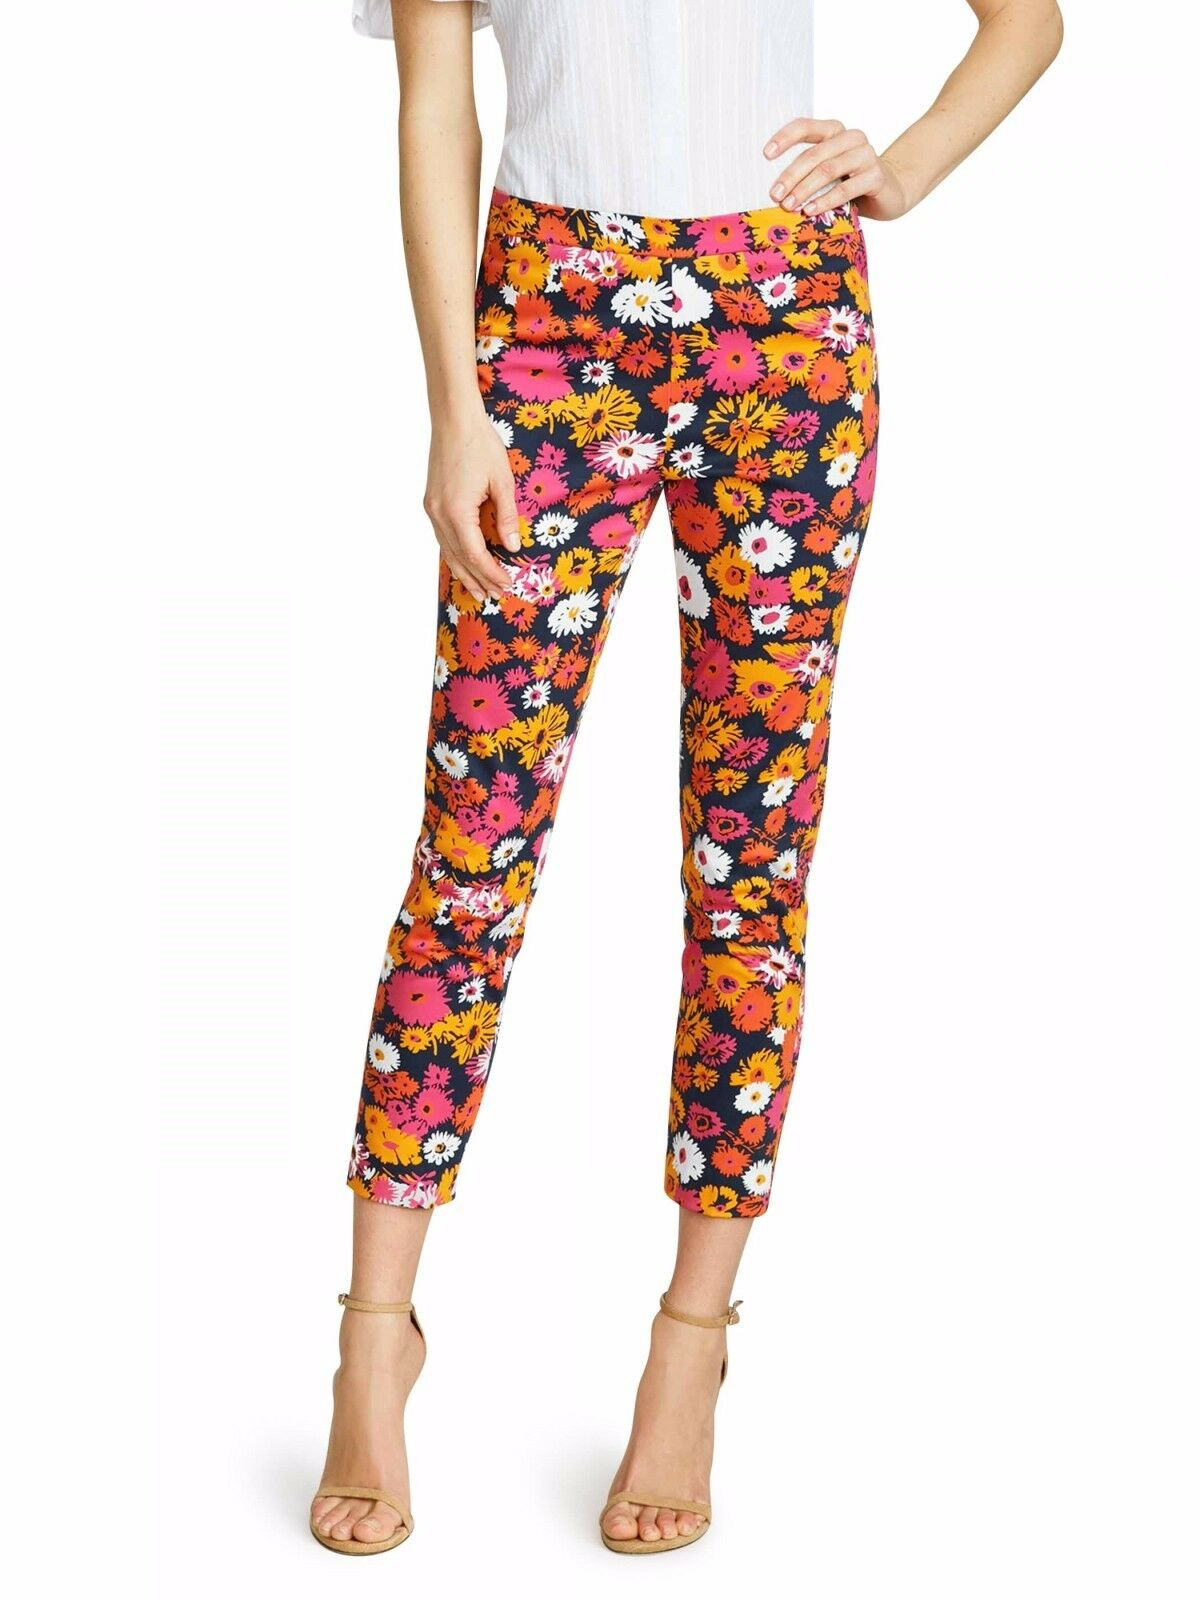 NWT Draper James Darlin' Daisy Knoxville Pant Size 8 Pink Floral Pattern  165